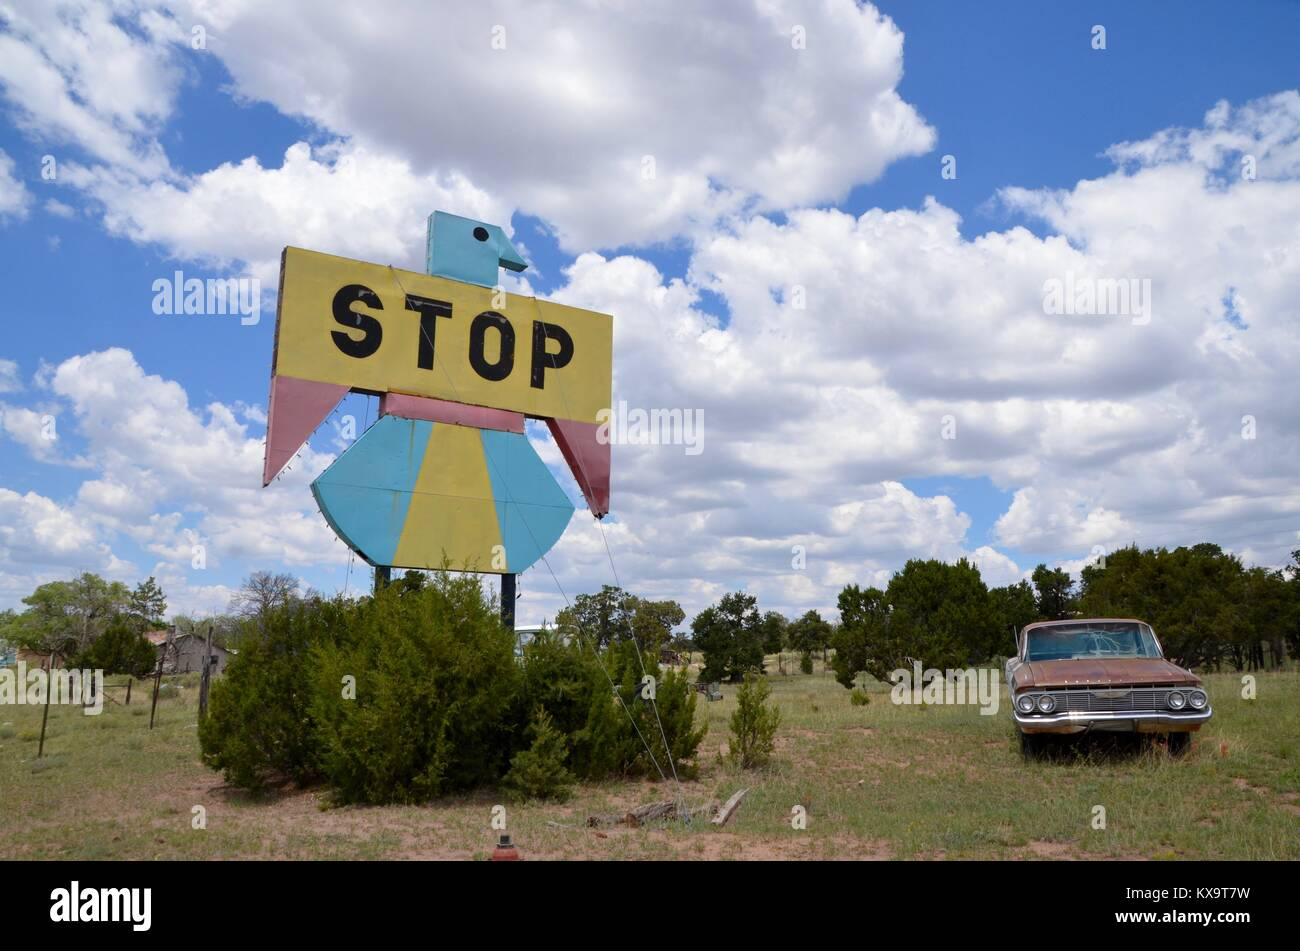 a hand painted thunderbird style sign and vintage car in pietown new mexico Stock Photo